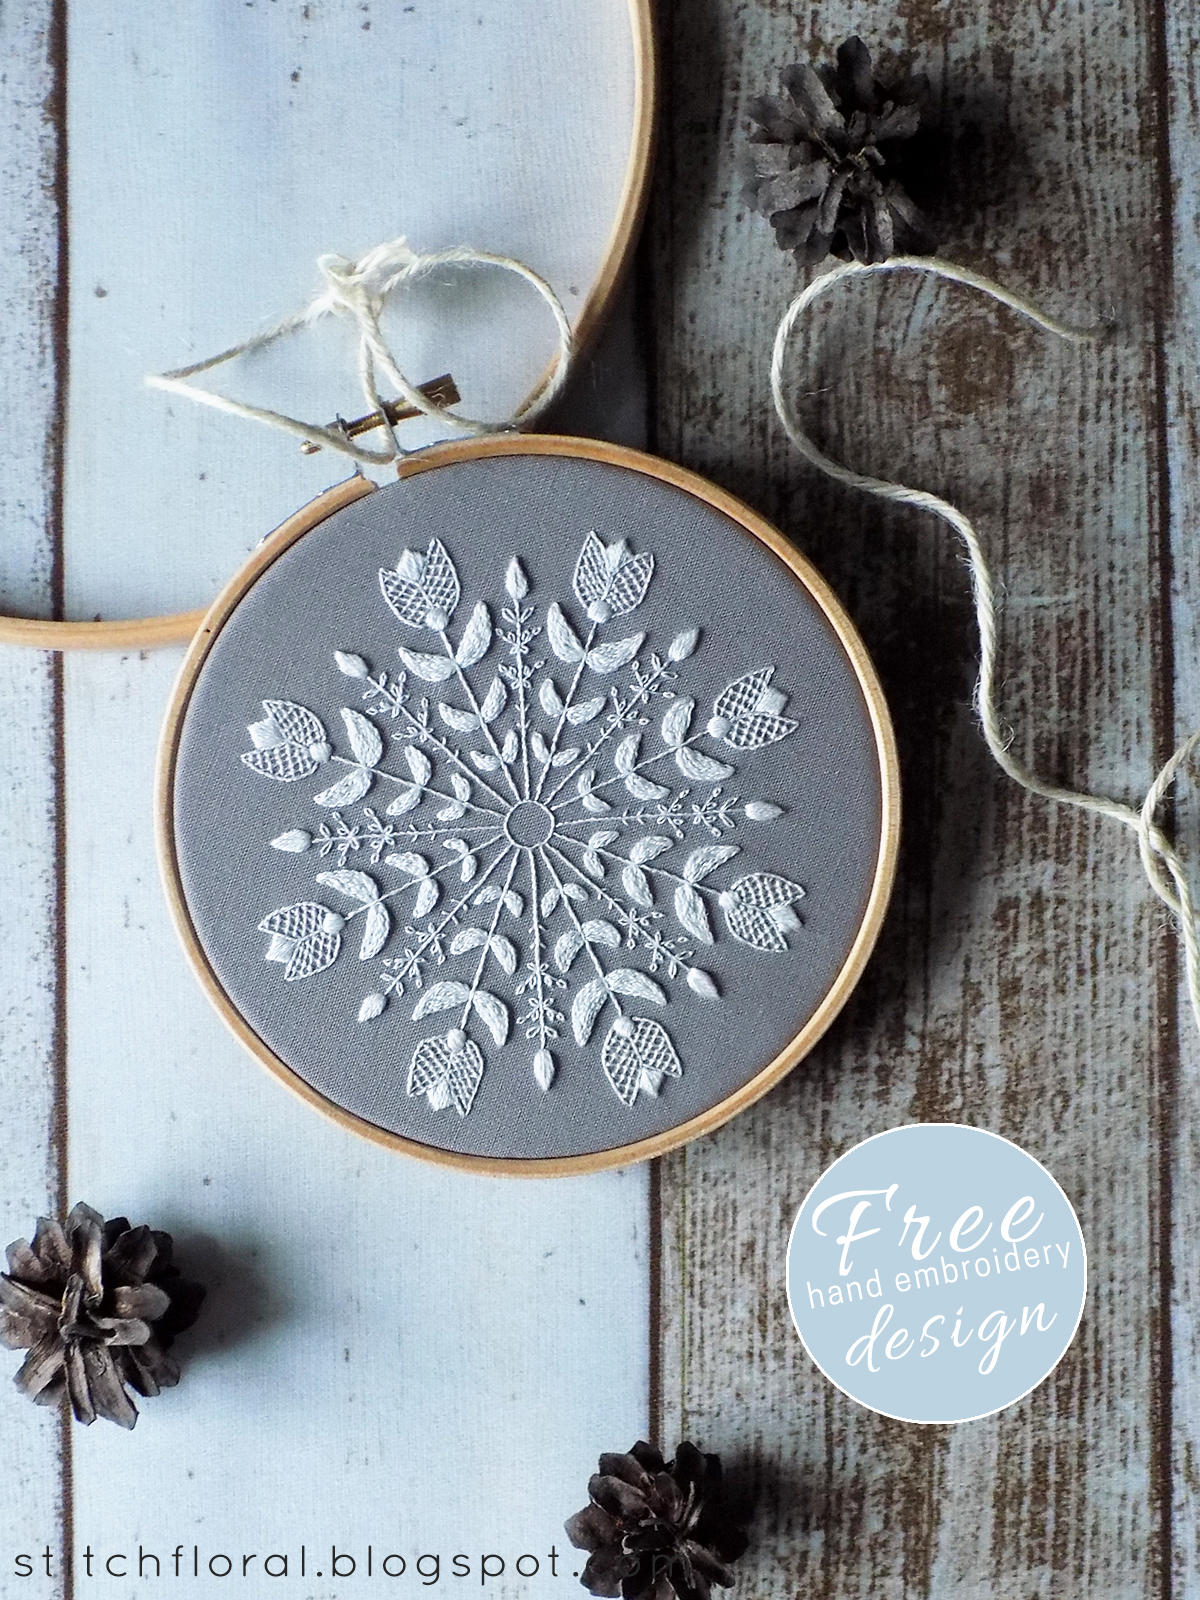 Snowflake Mandala : snowflake, mandala, Snowflake, Mandala:, Winter, Inspired, Embroidery, Freebie, Stitch, Floral